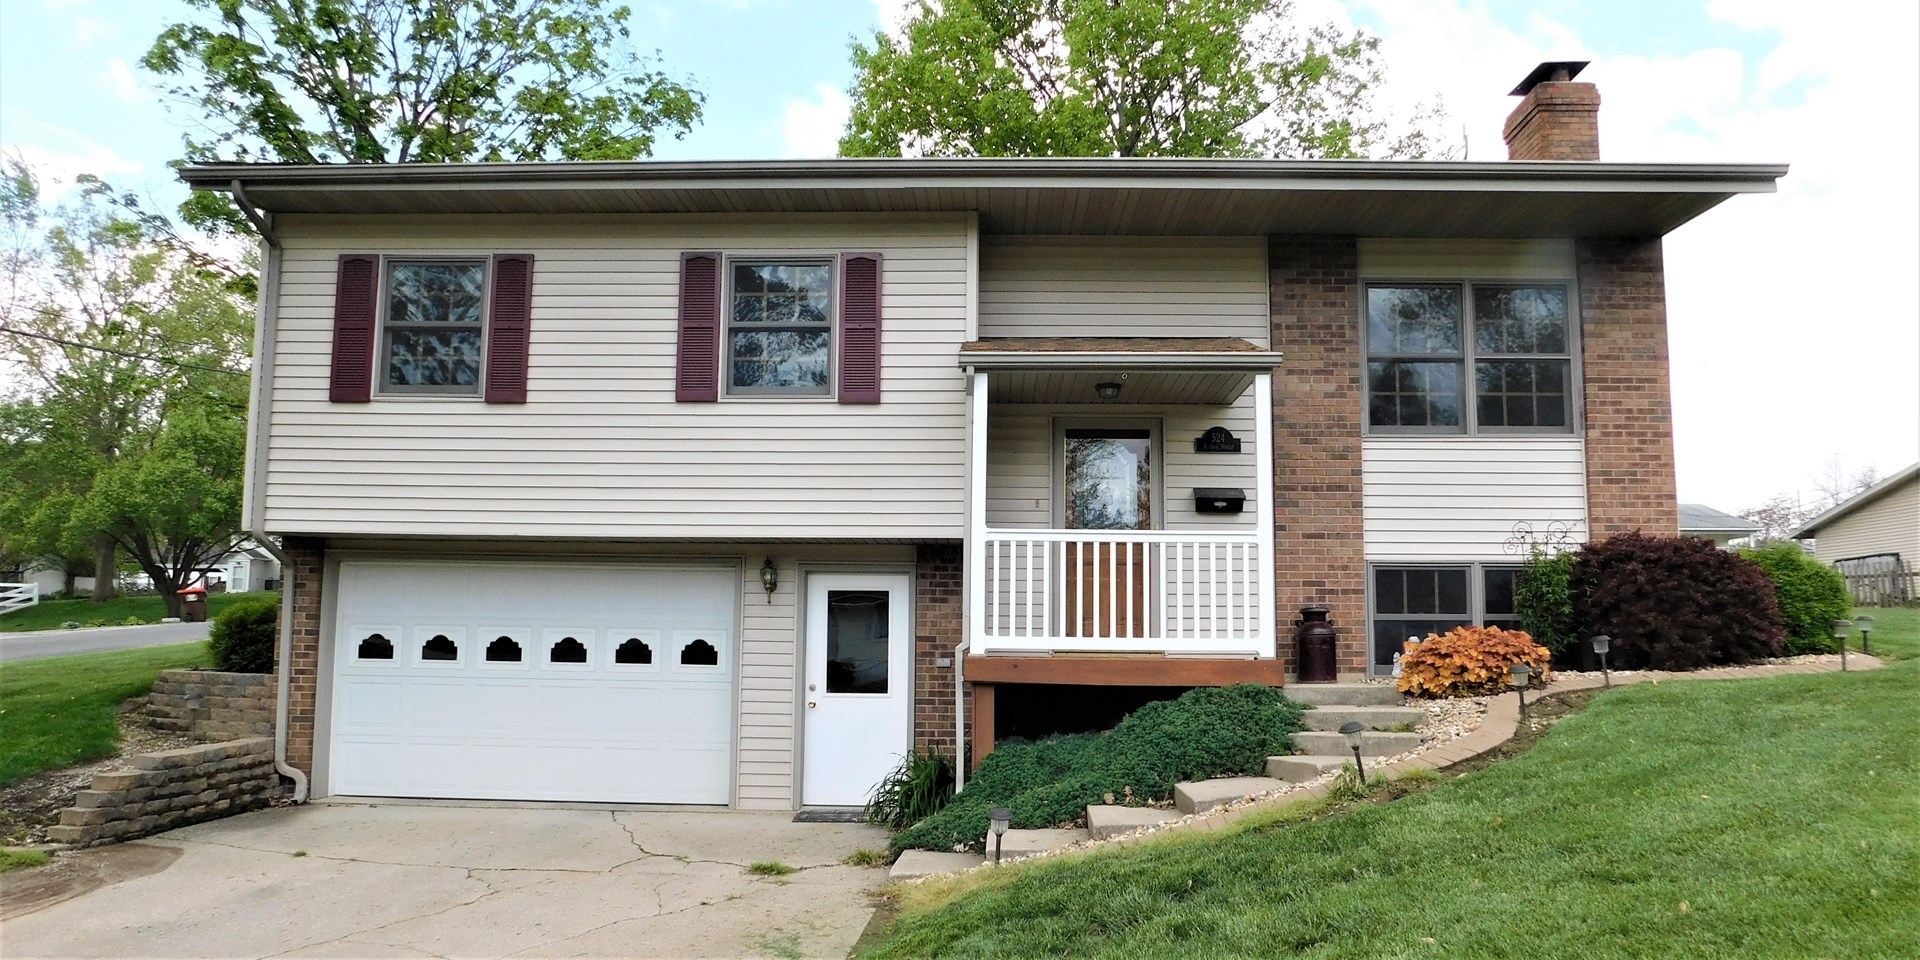 Immaculate 3 BR 2 BTH split level on oversized corner lot.